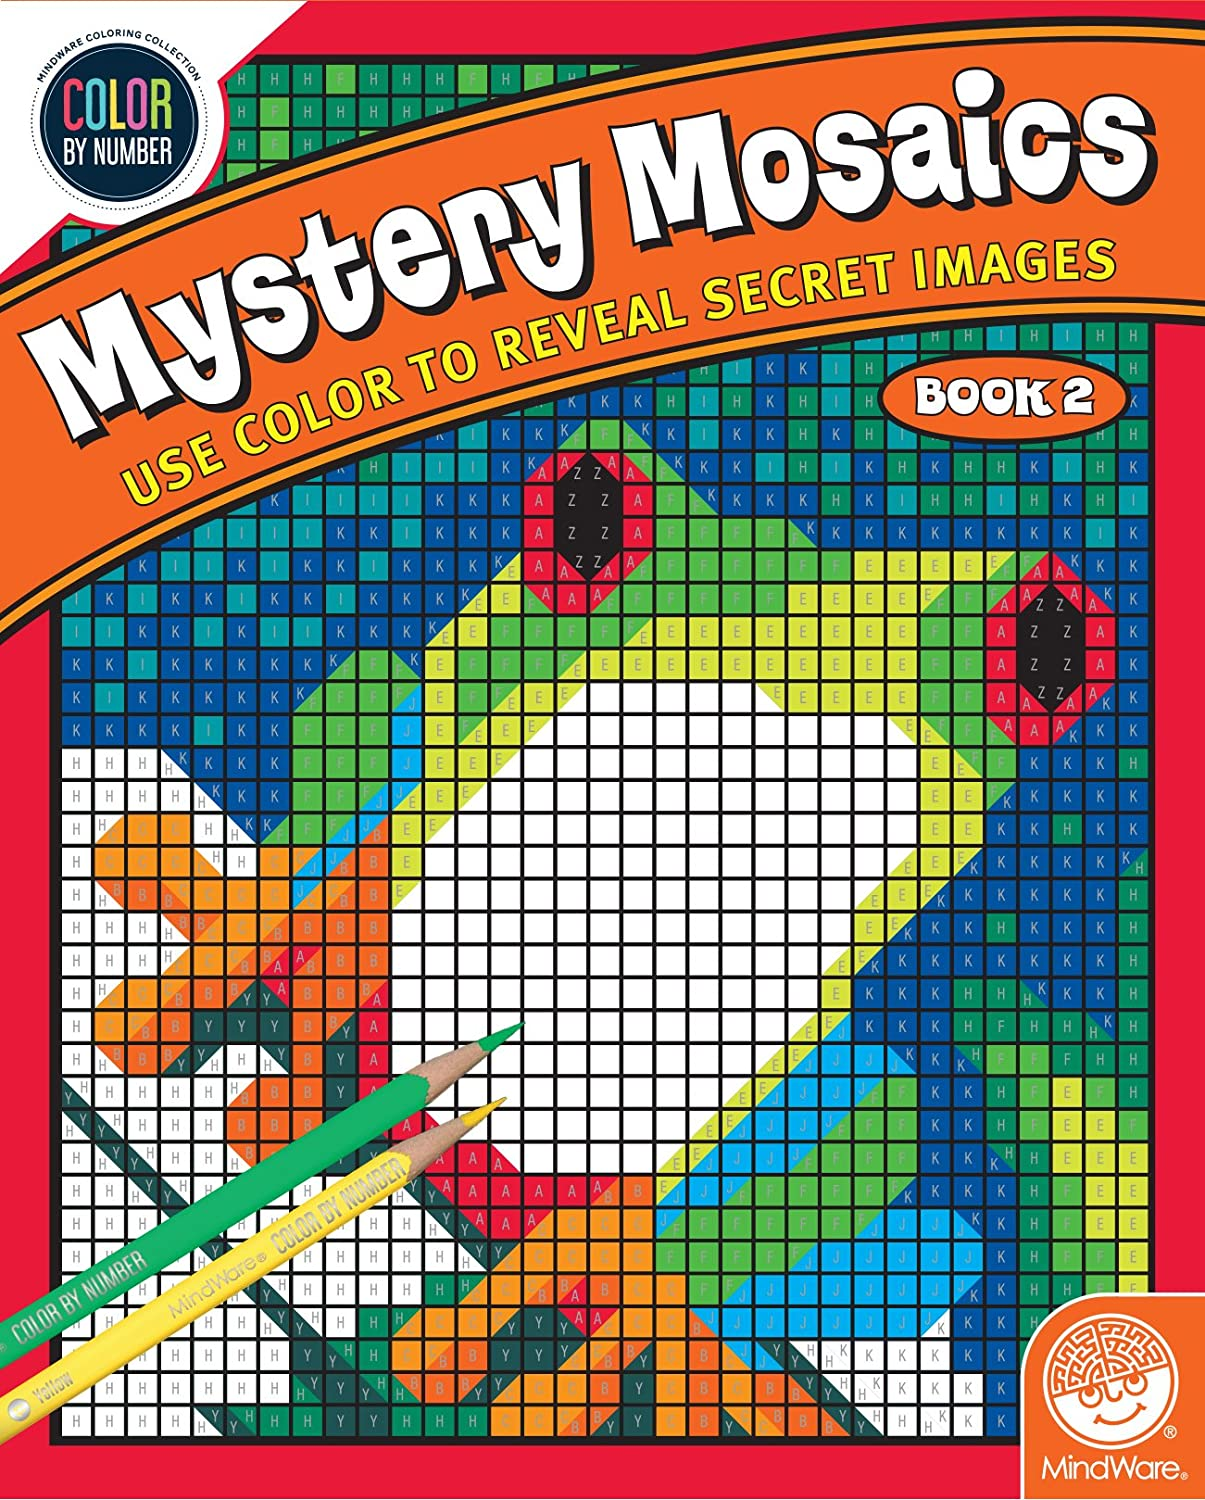 Amazon.com: Color By Number Mystery Mosaics: Book 2: Toys & Games